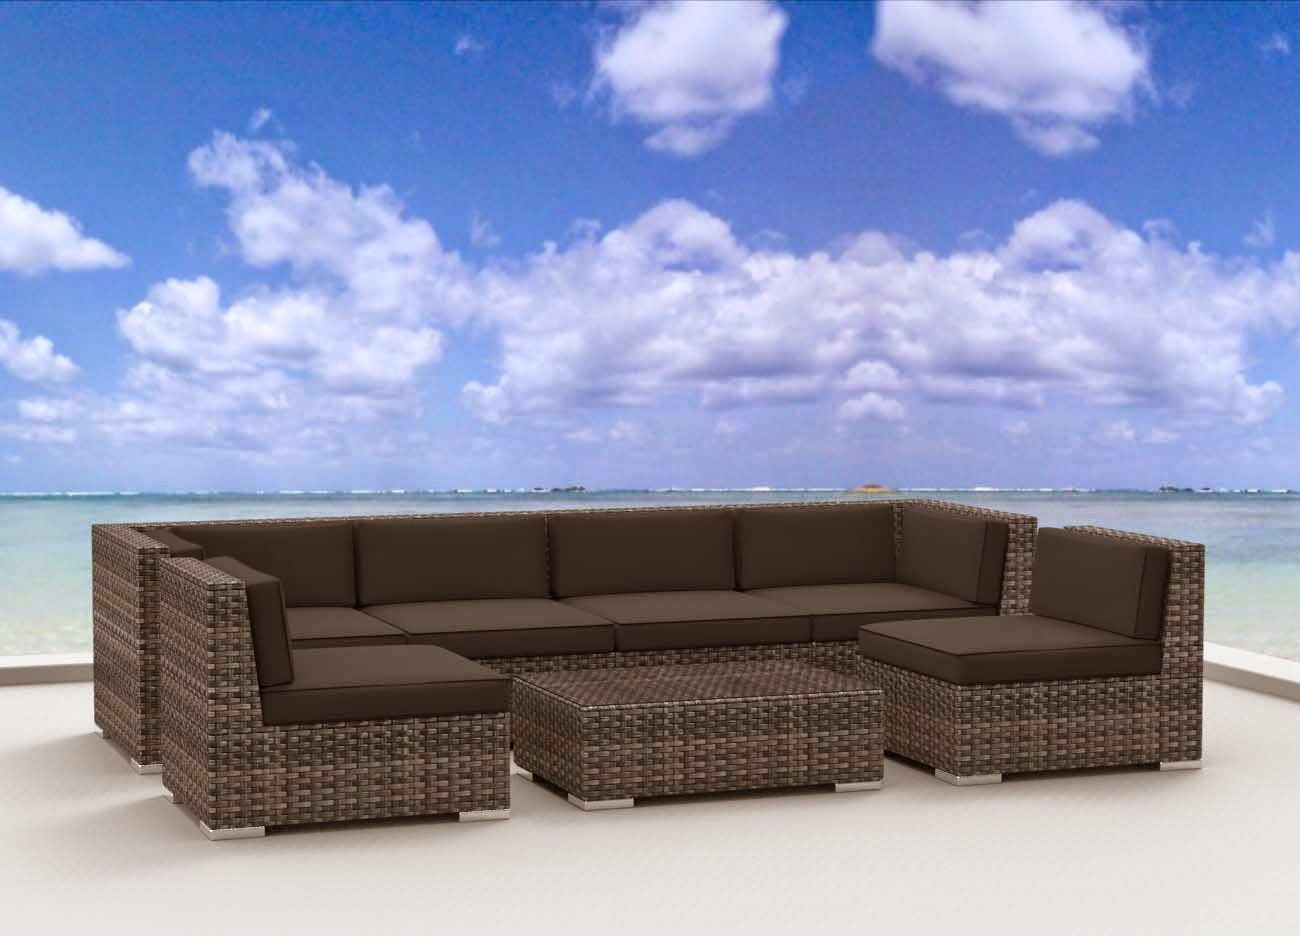 Urban furnishing modern outdoor backyard wicker rattan for Backyard pool furniture